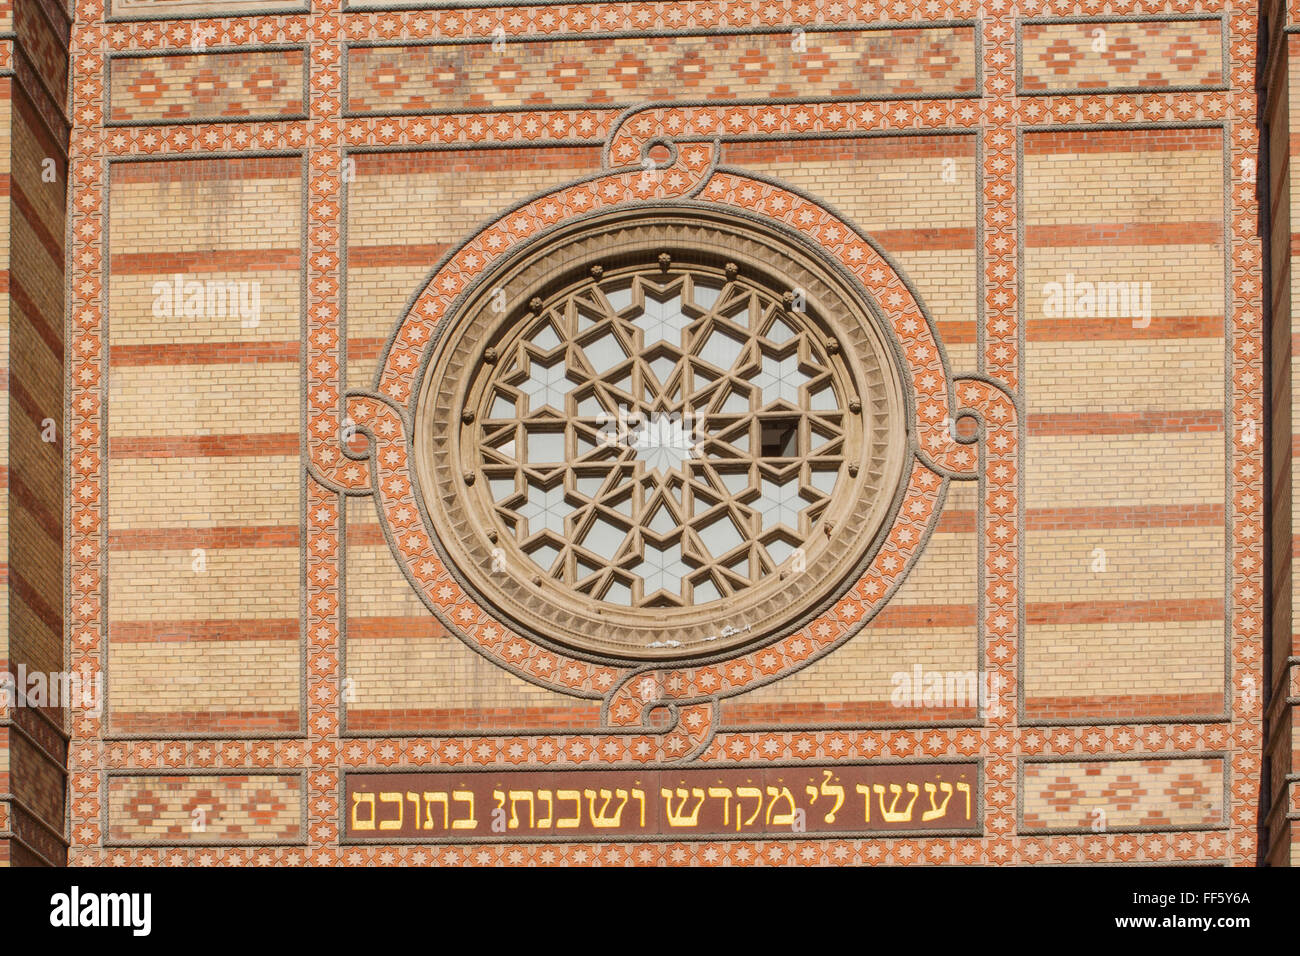 Rose window and Hebrew inscription on the facade of the Great Synagogue, Budapest, Hungary - Stock Image